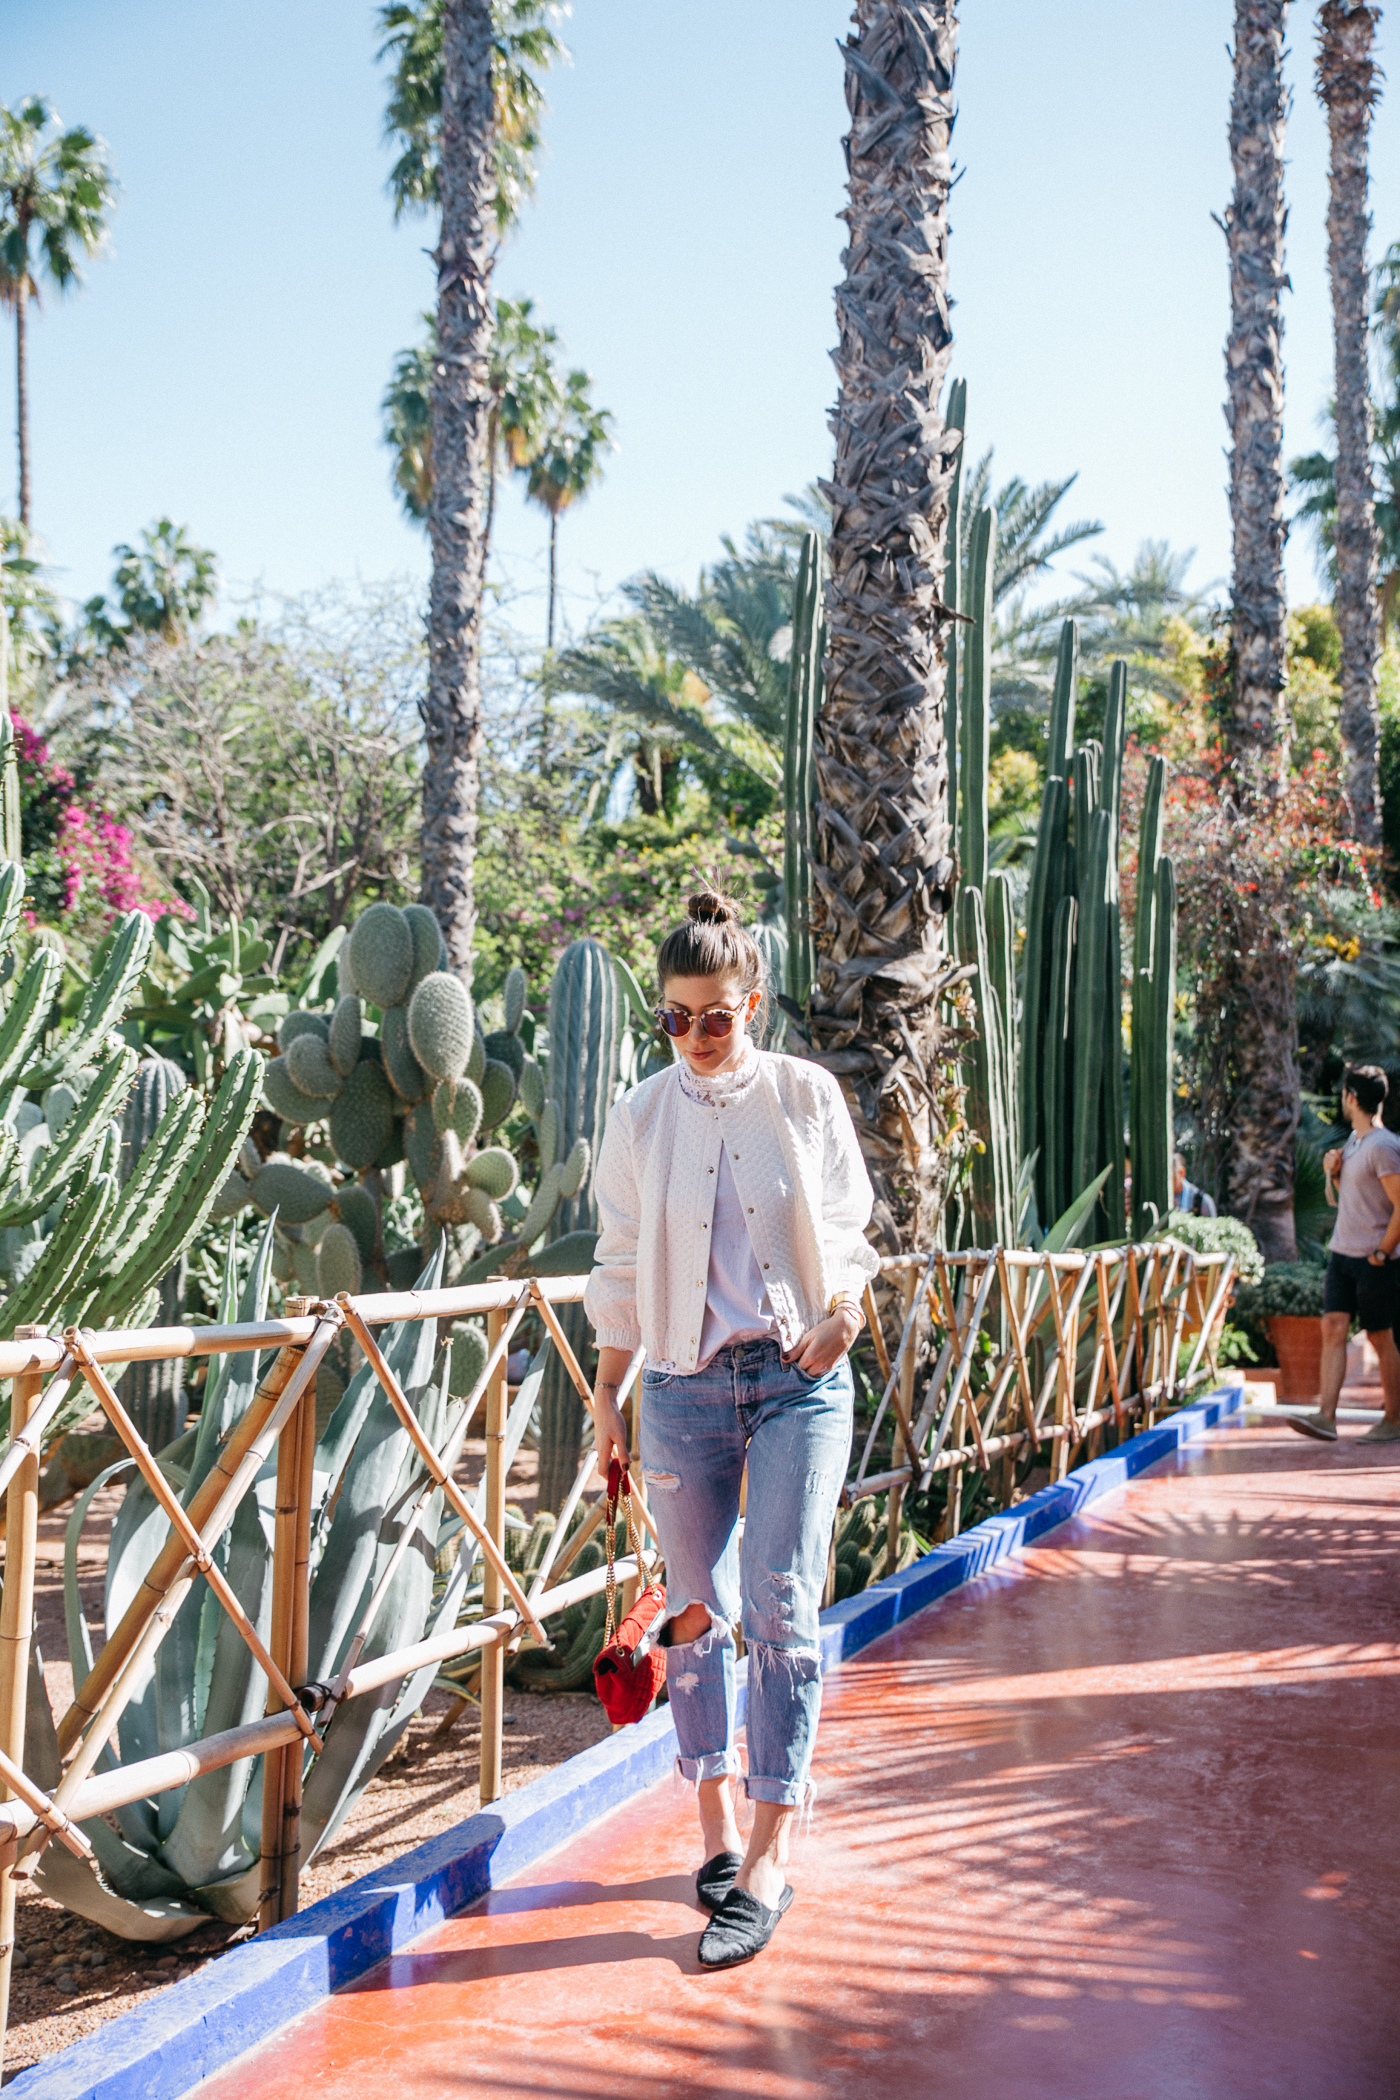 Le jardin majorelle marrakech yves saint laurent garden for Jardin ysl marrakech